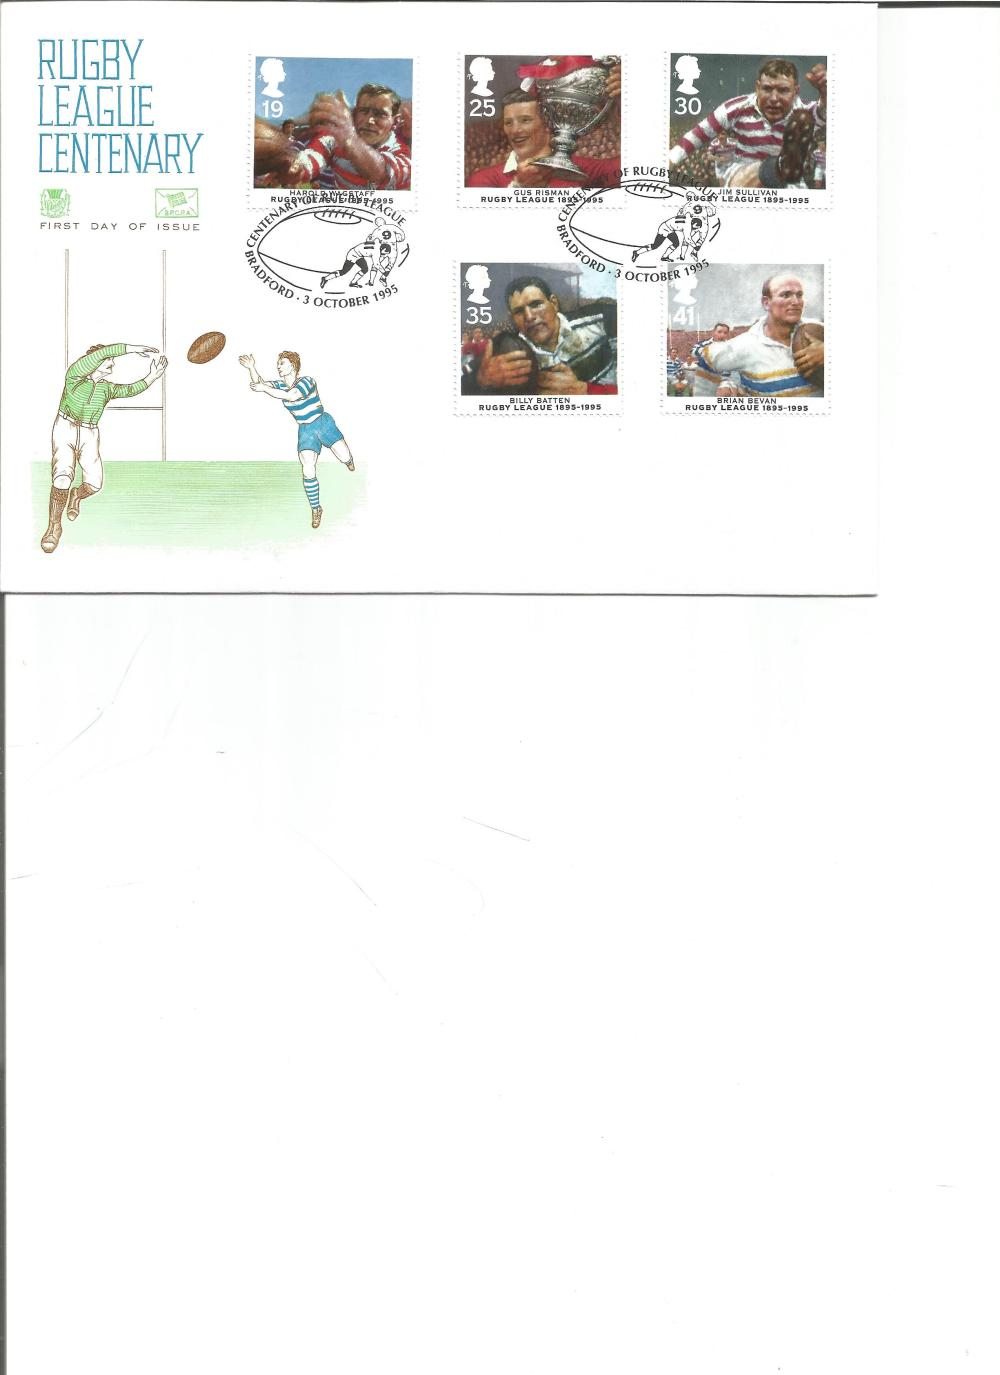 FDC Rugby League Centenary c/w set of five commemorative stamps PM Centenary Rugby League,